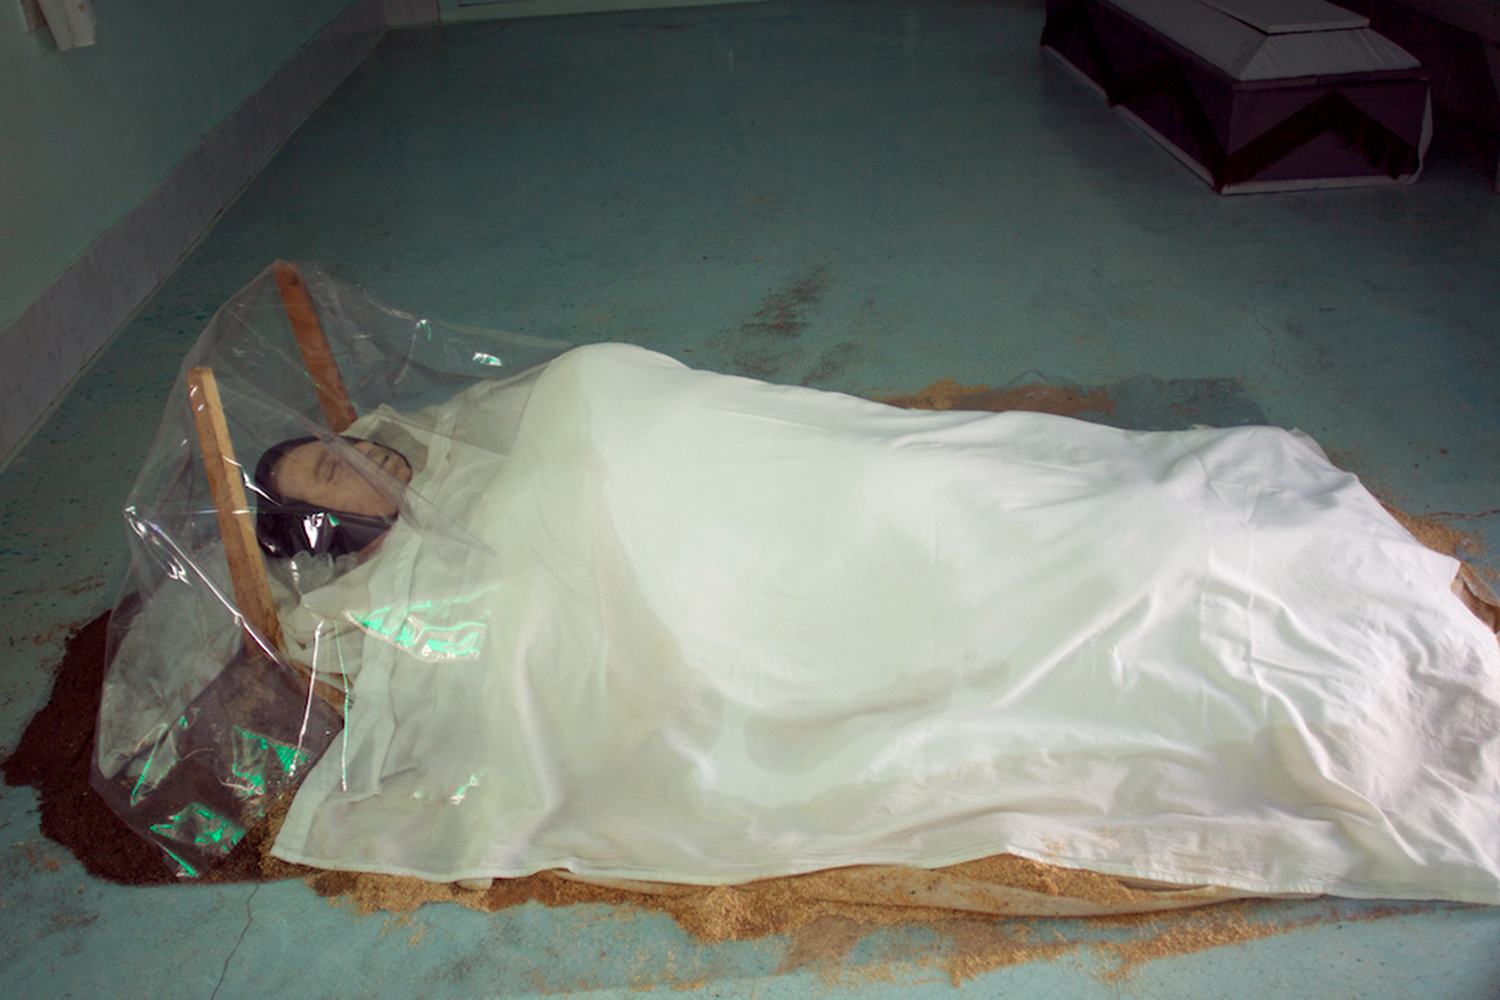 Dead woman laying under dirt, ice and sawdust within the place she died from heart disease. Her community pays her mourning by visiting the place for the next three days, Nuevo Ideal, Durango, Mexico, 2010